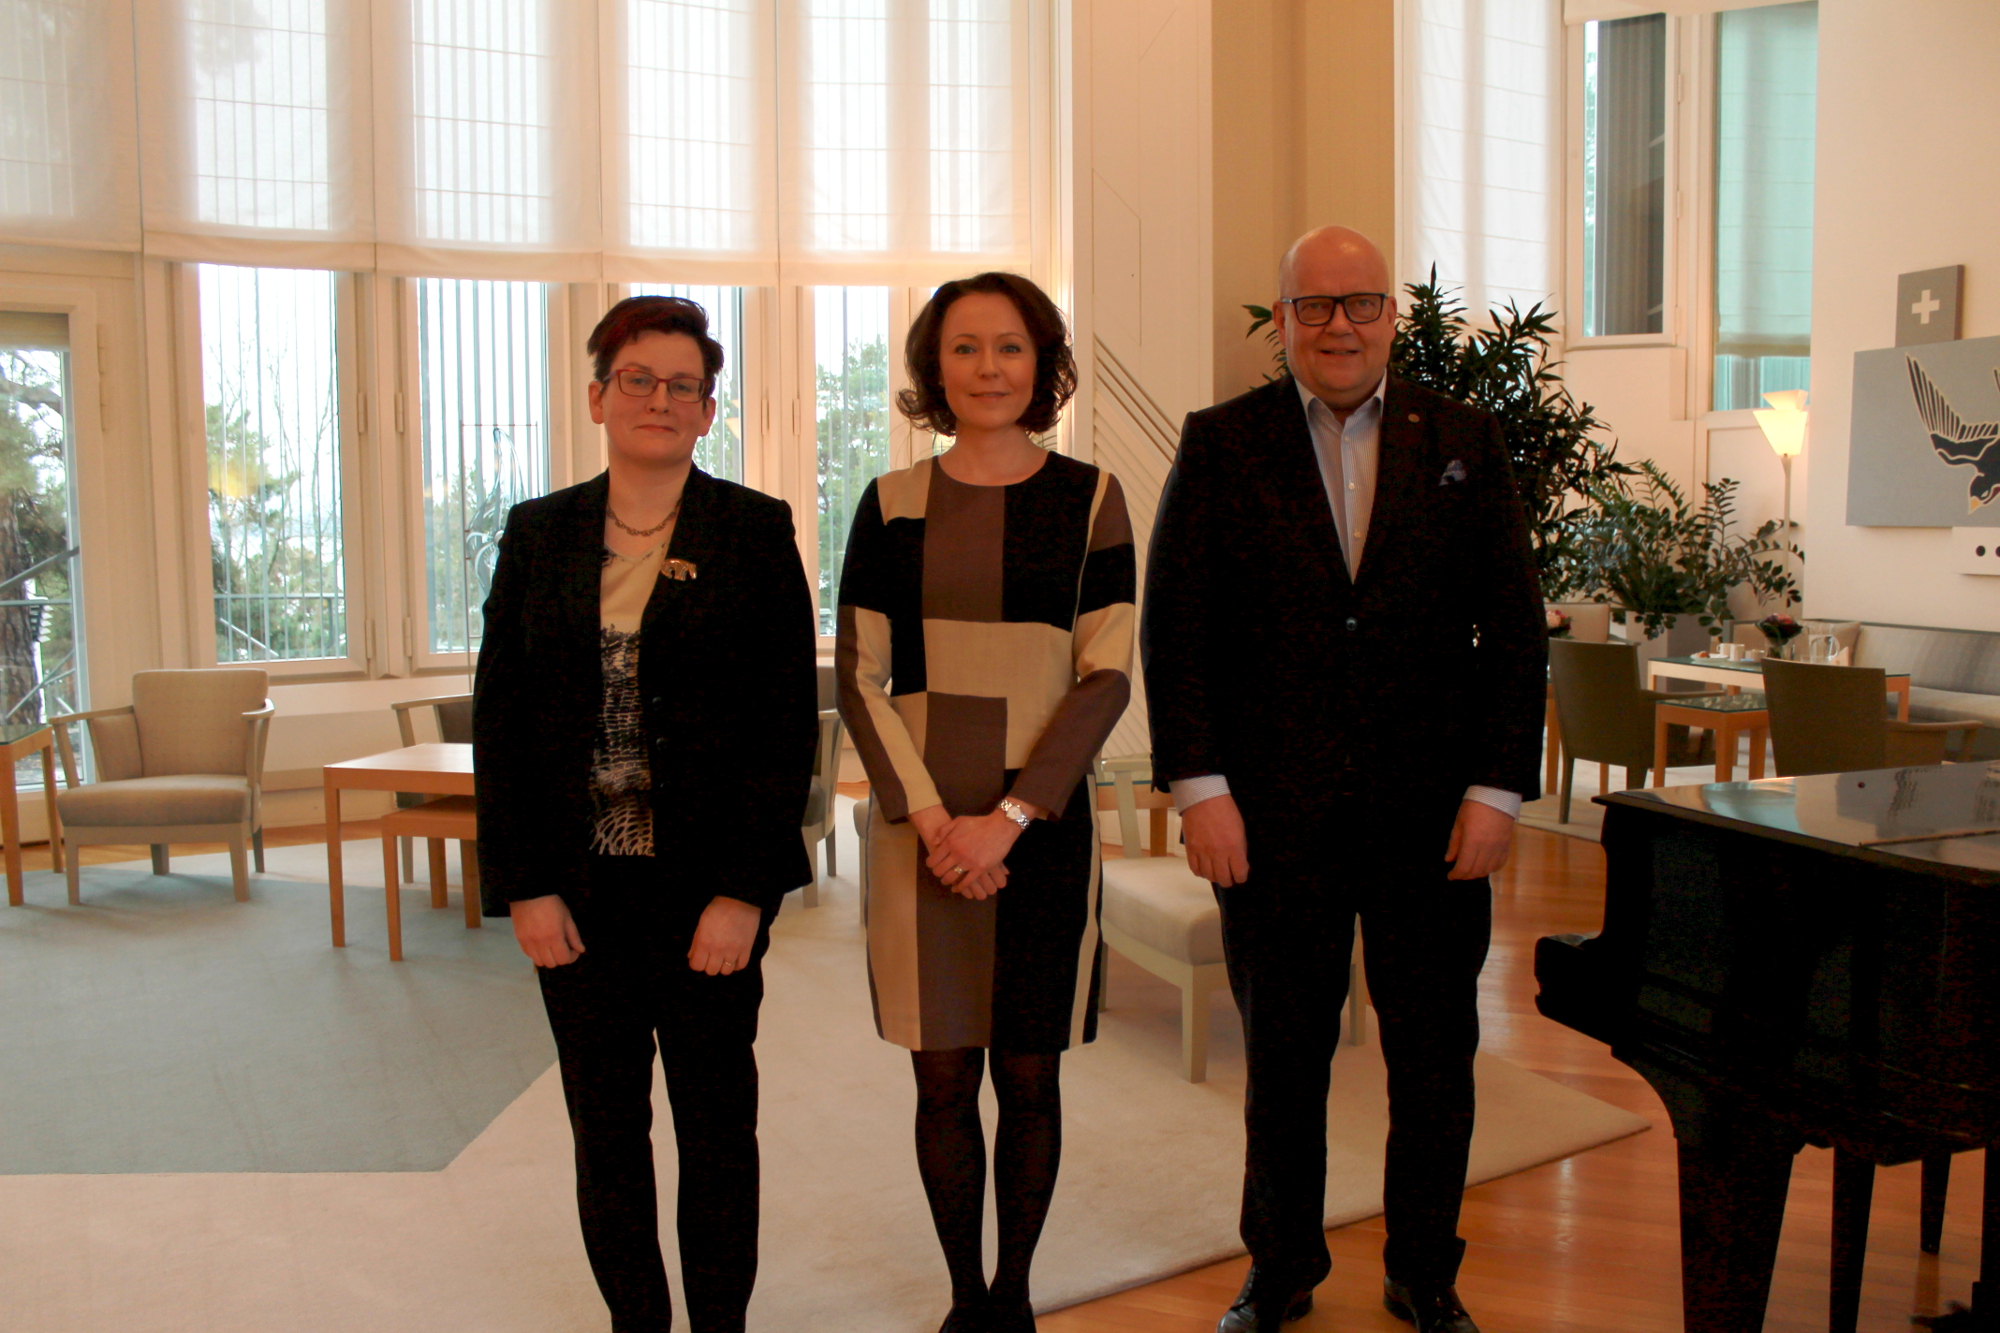 Ulla Konkarikoski, Jenni Haukio and Pekka Lapinleimu met in the President's official residence called Mäntyniemi.